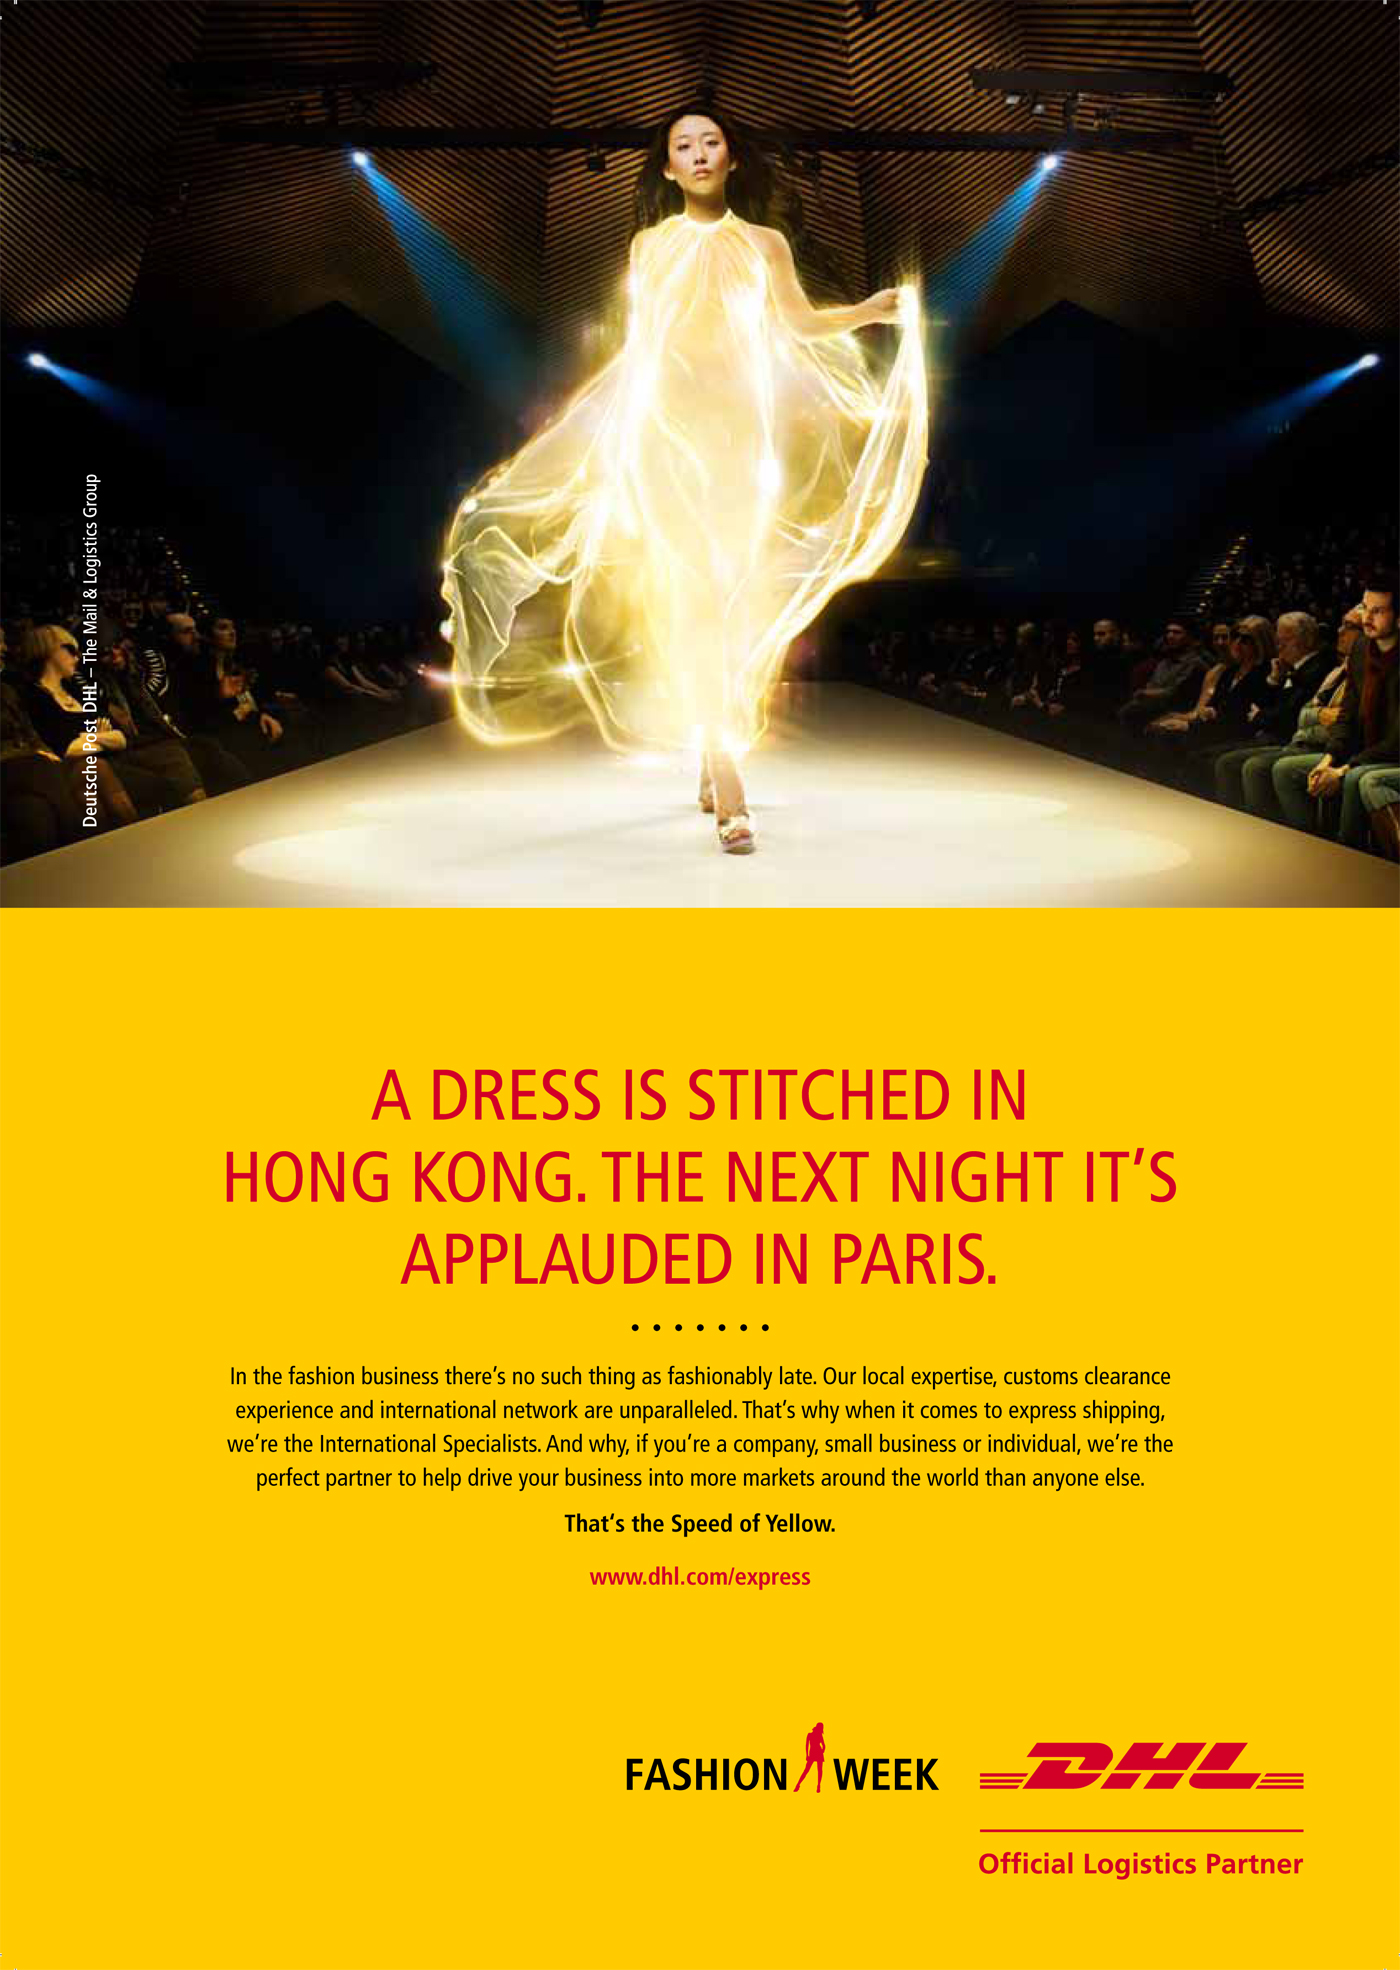 DHL Express Speed of Yellow - The Inspiration Room